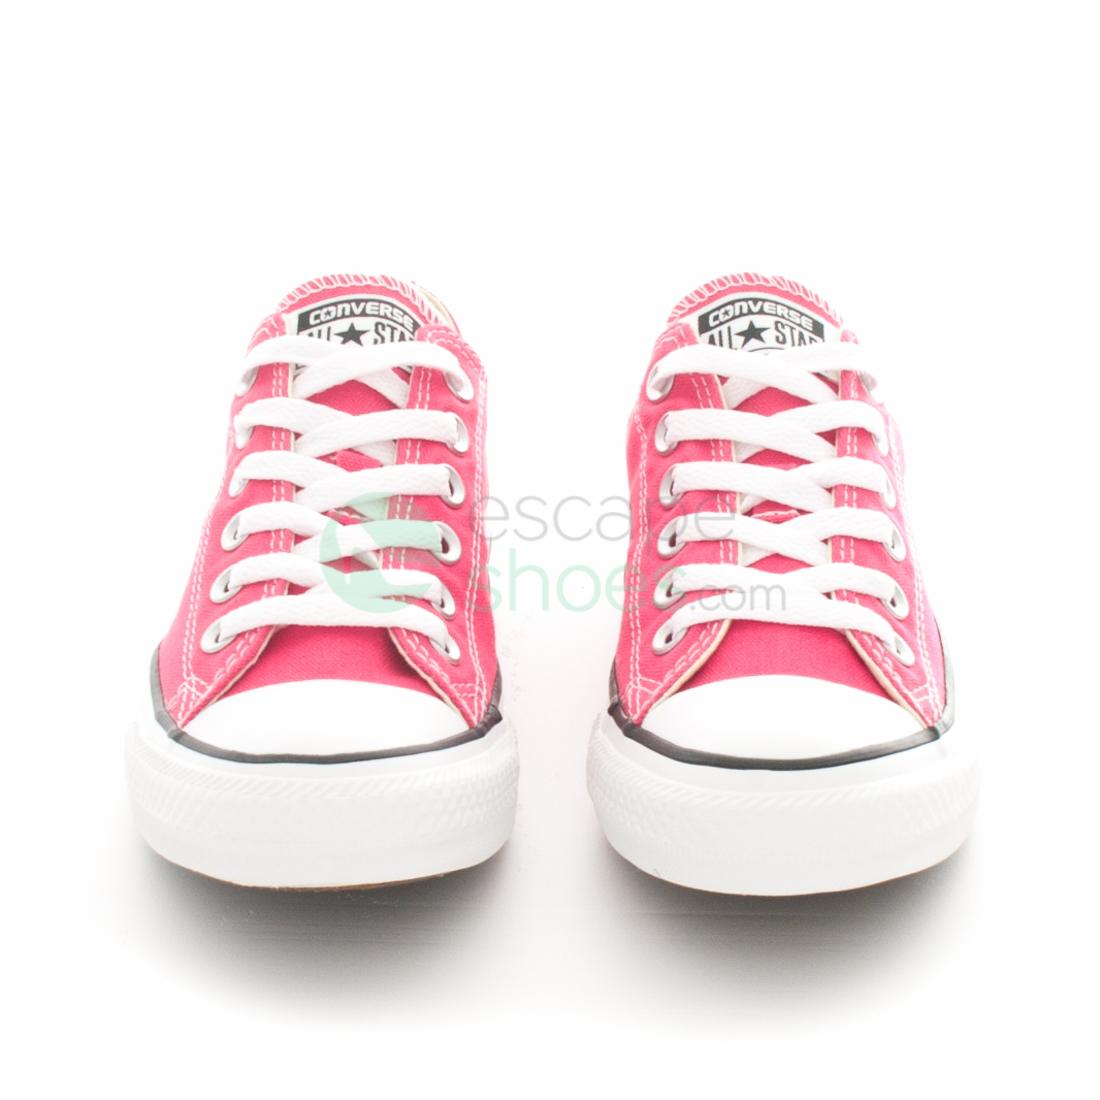 Converse Chuck Taylor All Star Ox Pink Paper Textile Baby